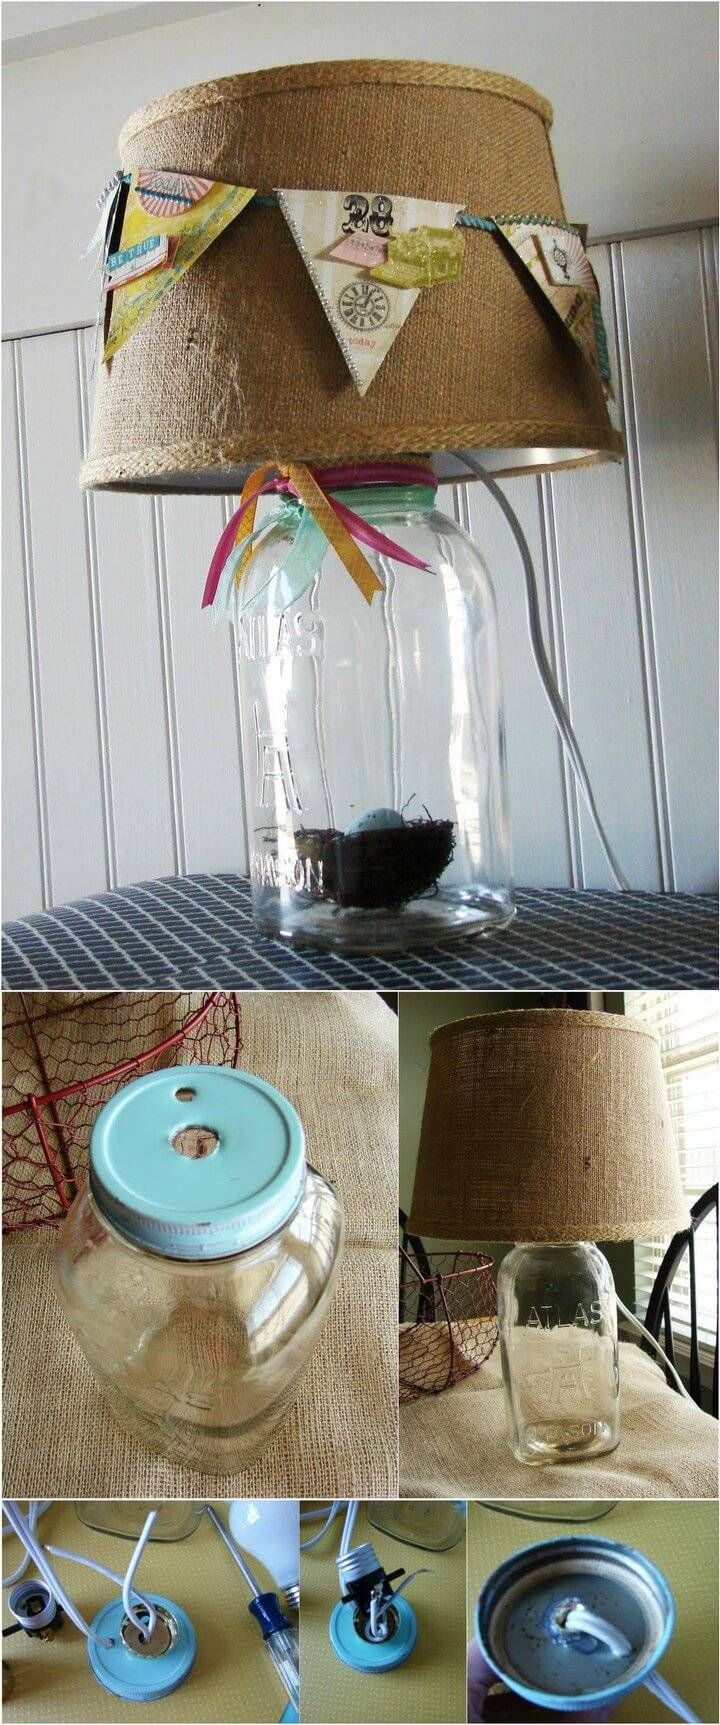 DIY Mason Jar Lamp with Spring Banner Lampshade